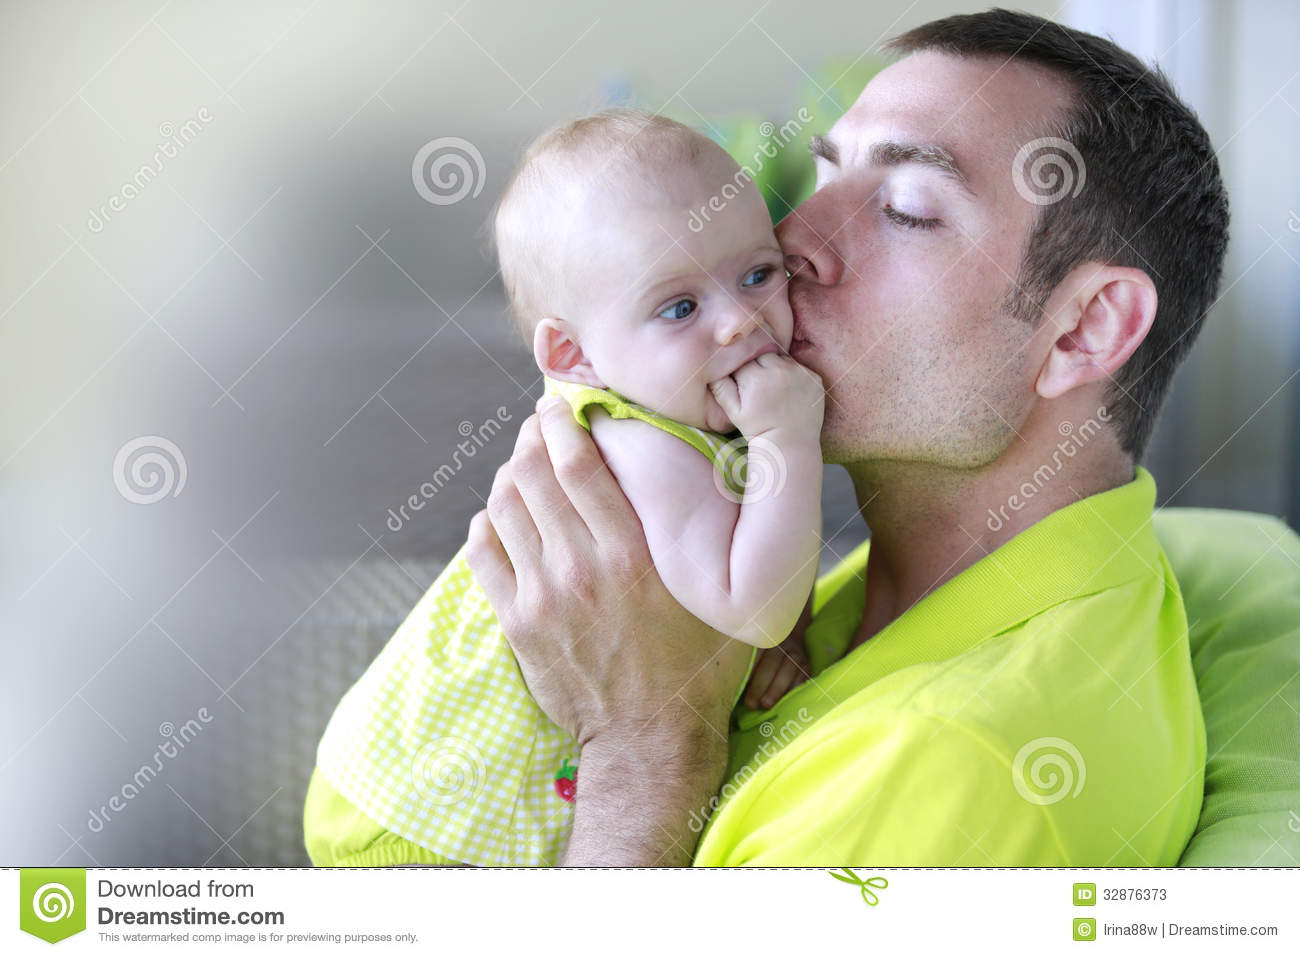 Sorry, Farther fucking very young daughter